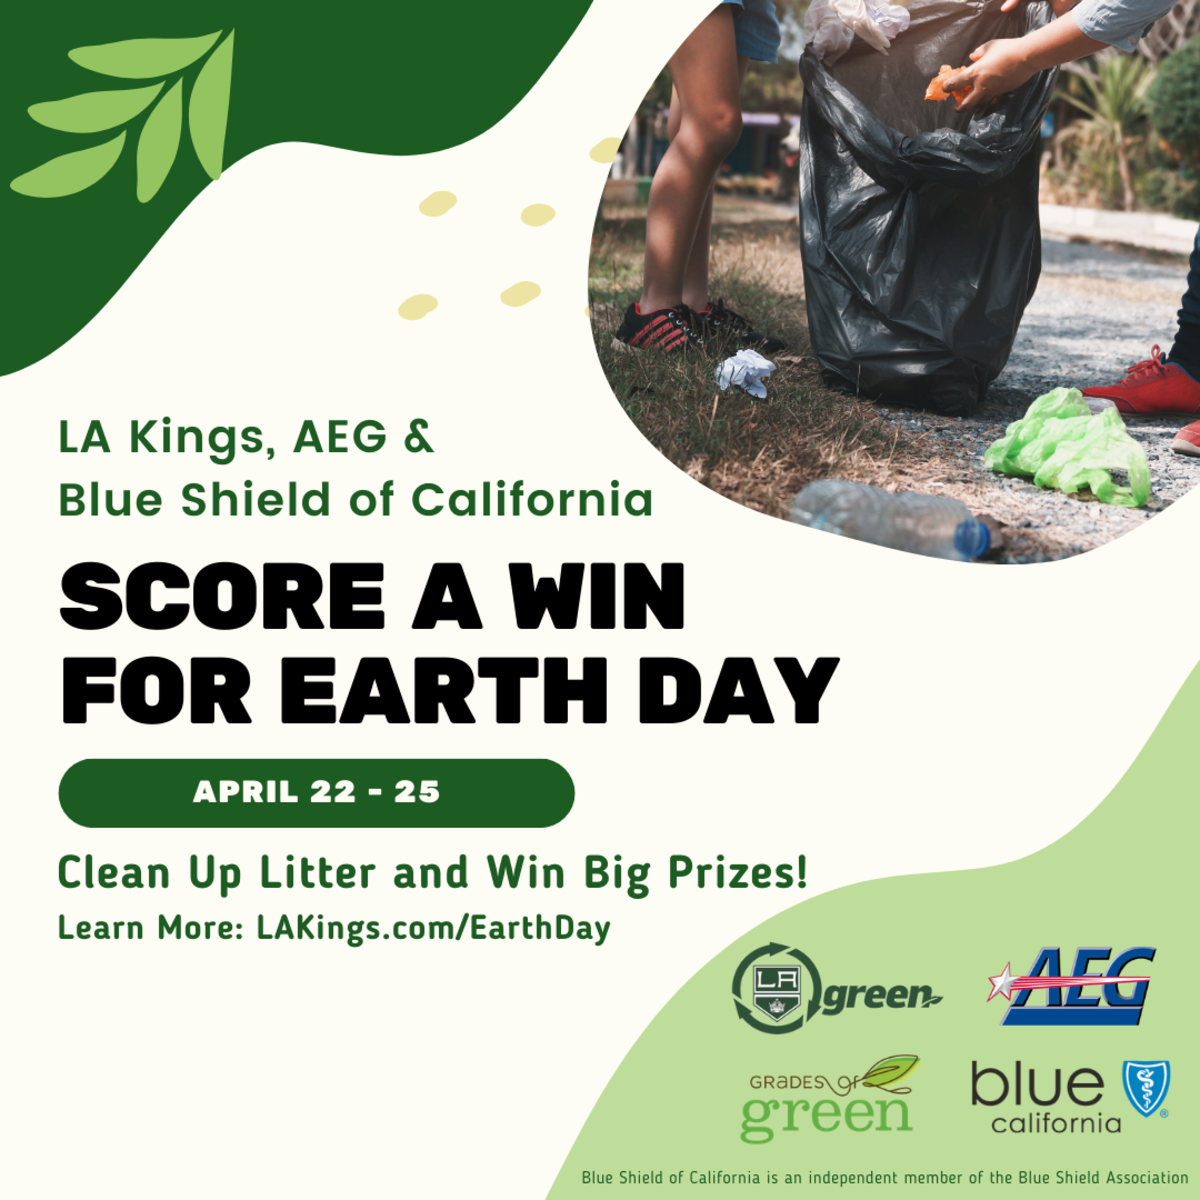 AEG and LA Kings Team Up with Blue Shield of California and Grades of Green to Send Litter to the Penalty Box for Earth Week